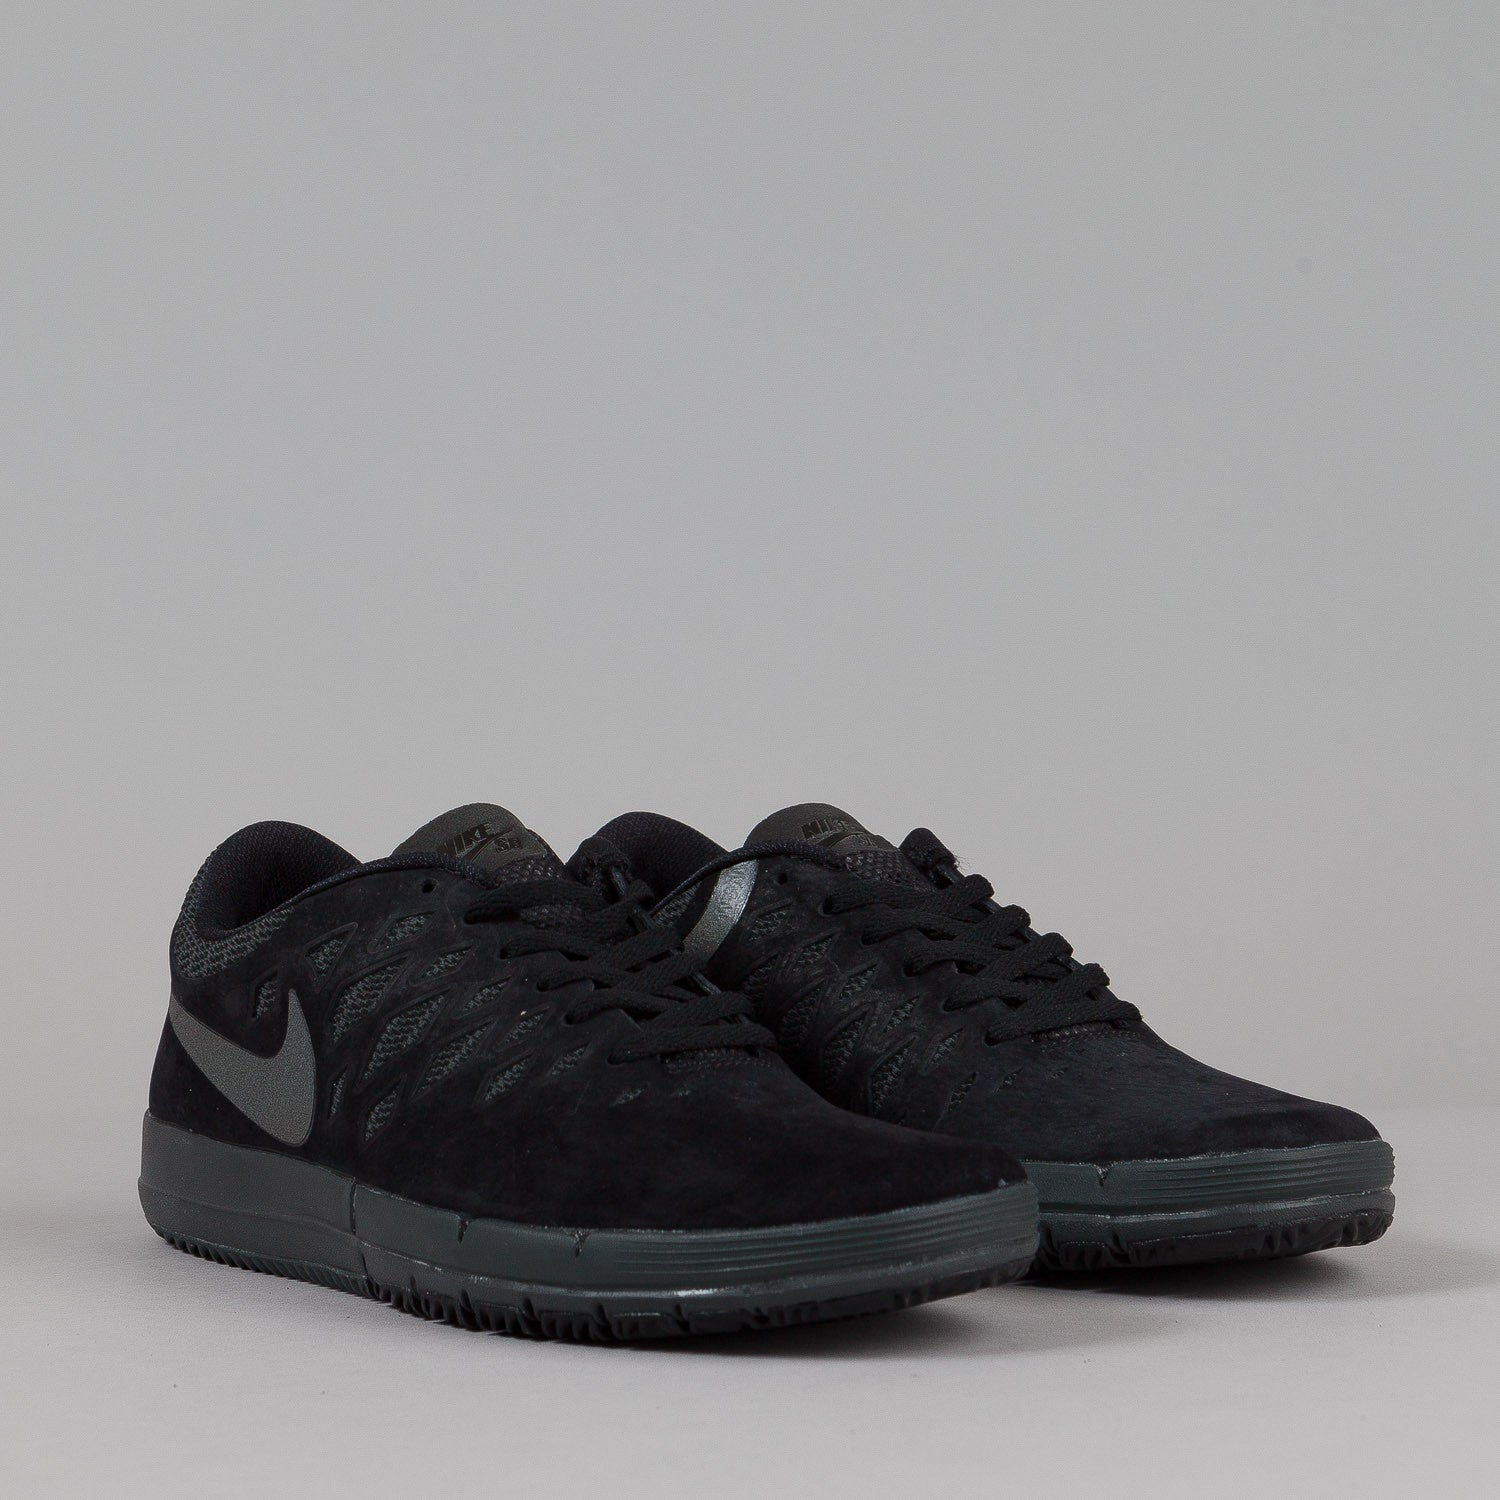 Nike SB Free Shoes Premium - Black / Black / Anthracite